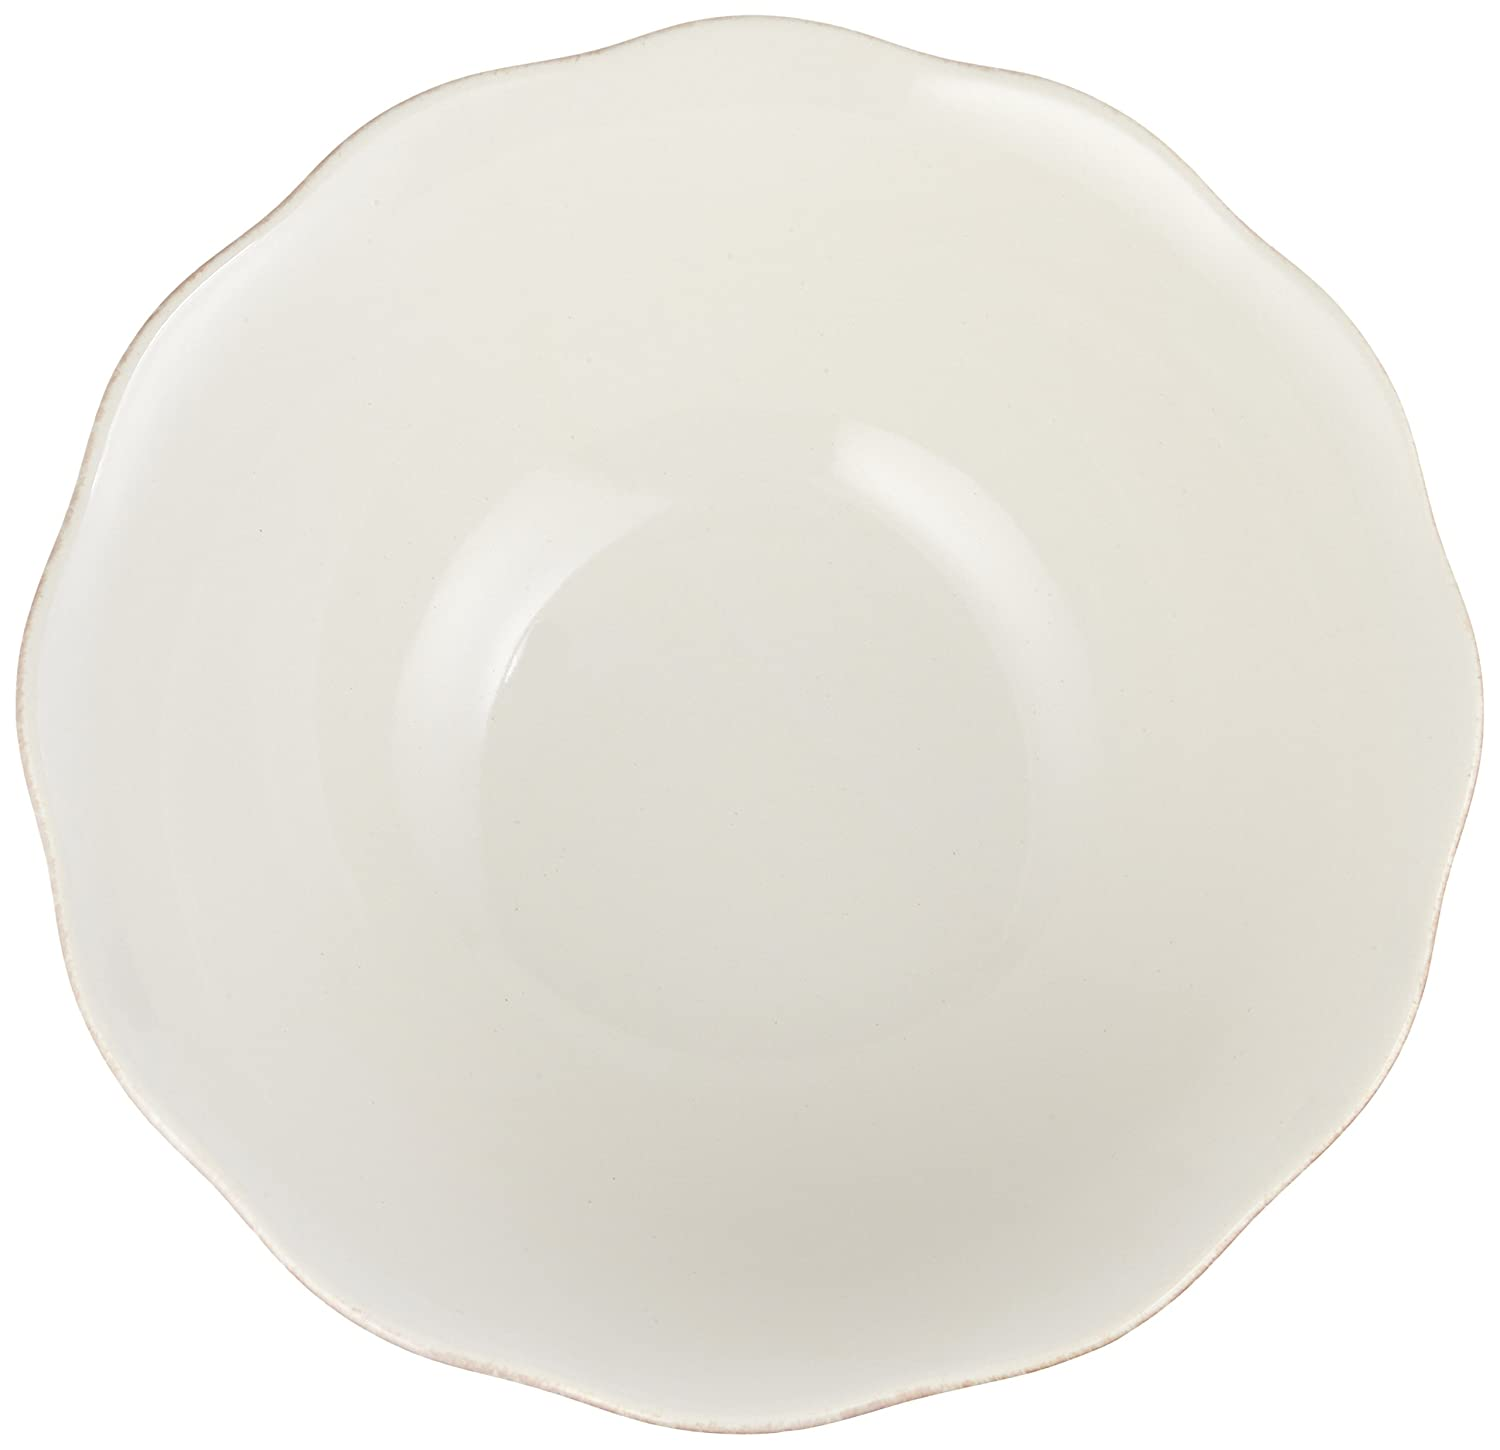 Set of 3 825739 White 4-1//4-Inch Lenox French Perle Dipping Bowls